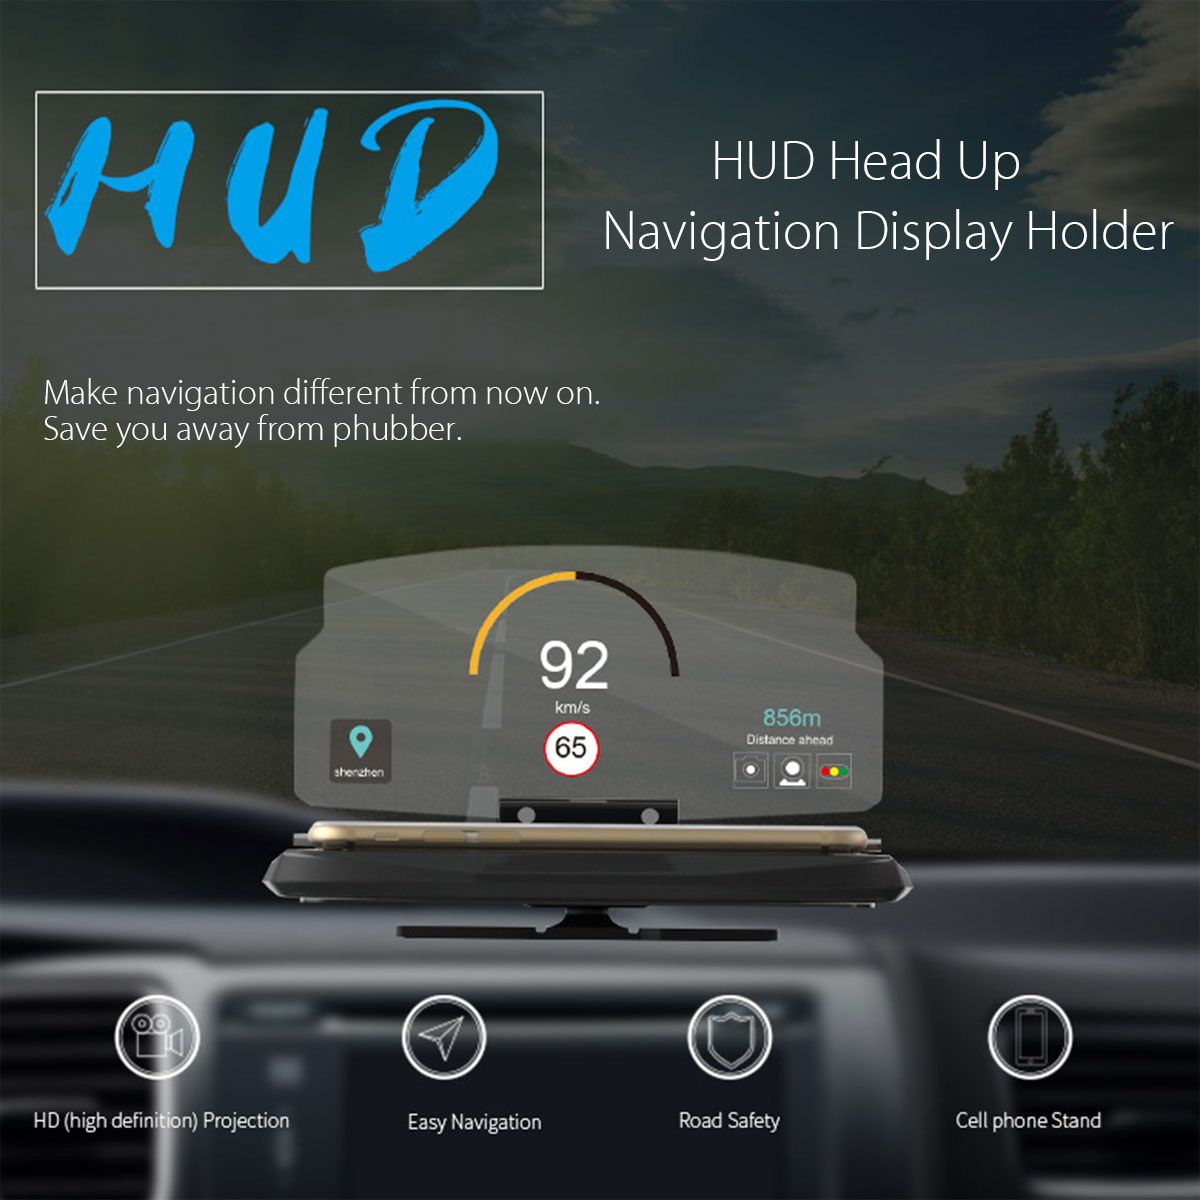 Universal Mobile Phone Car Holder Windscreen <font><b>Projector</b></font> HUD Head Up Display 6.5 Inch For iPhone/Samsung GPS